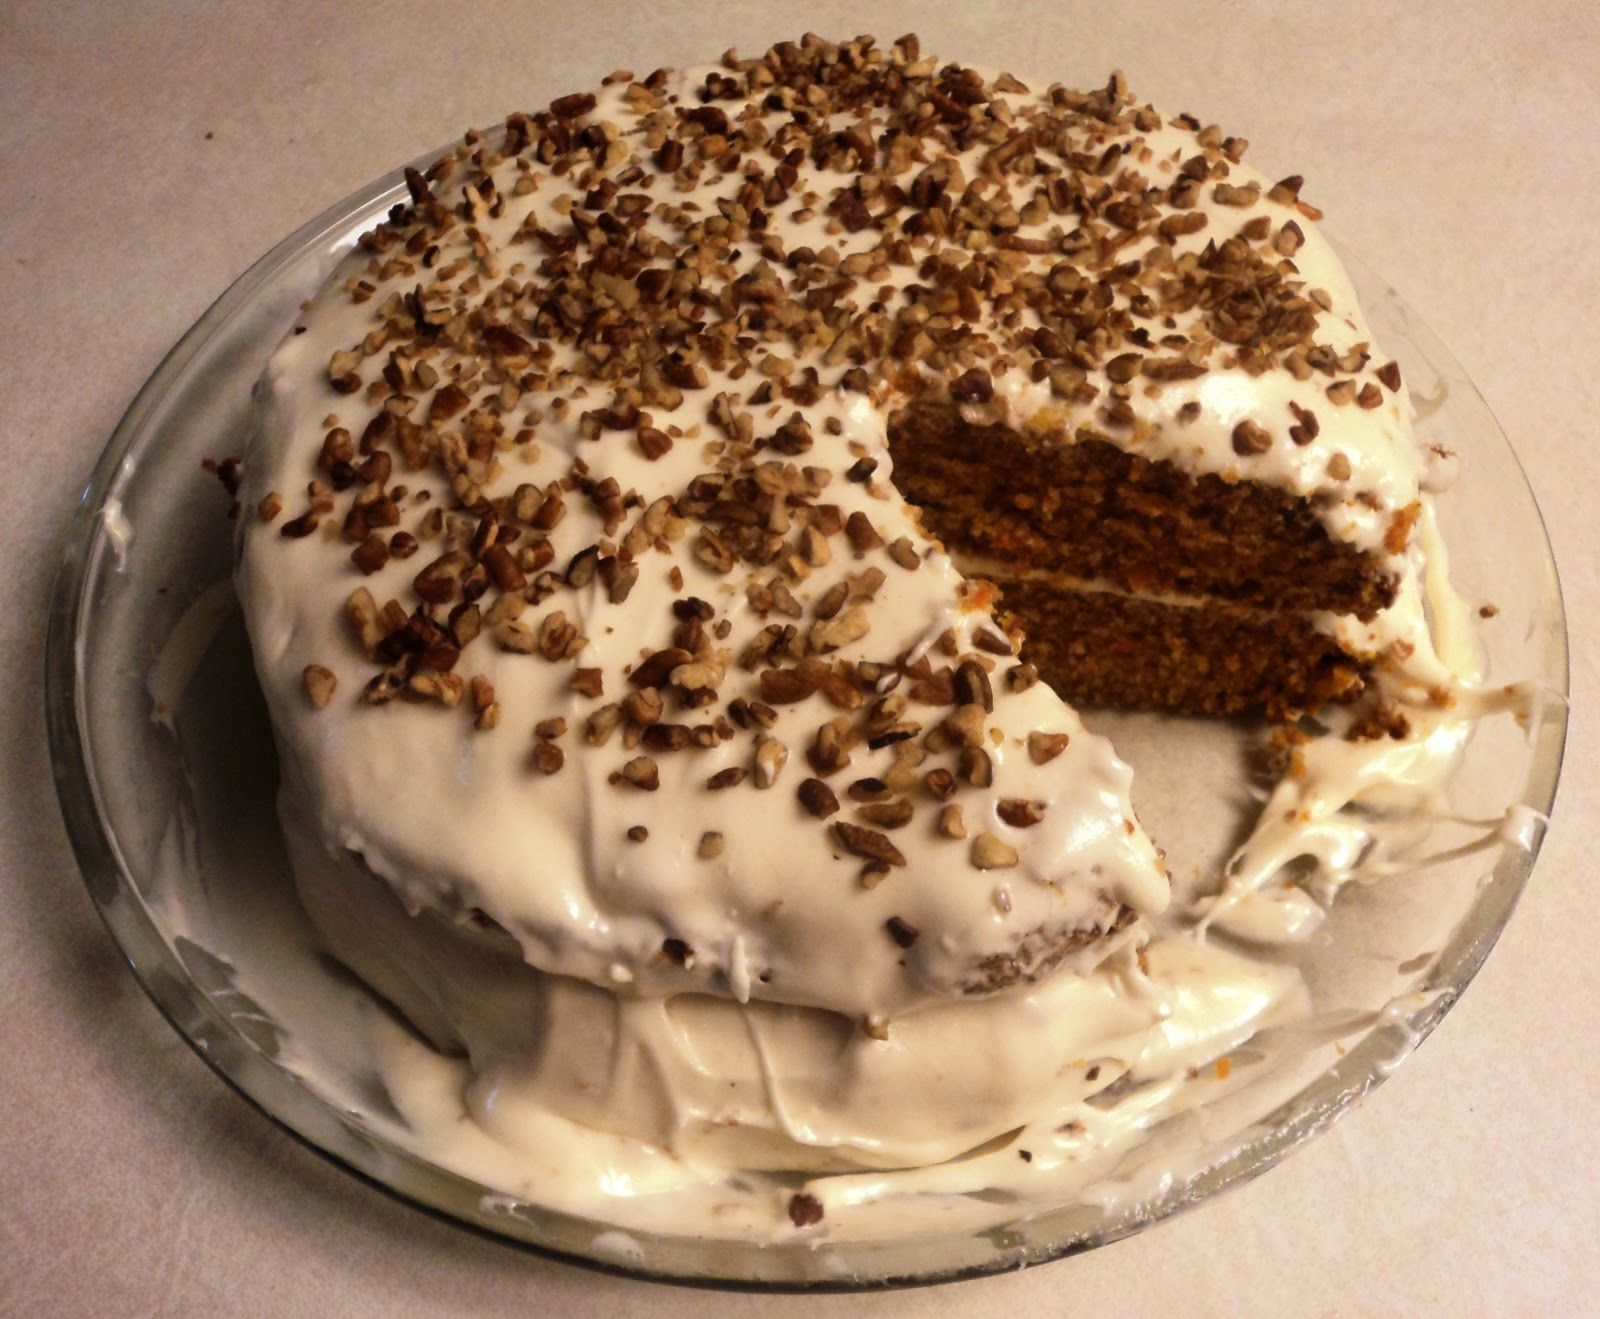 ... cream cream cheese frosting and marzipan carrot s carrot cake carrot